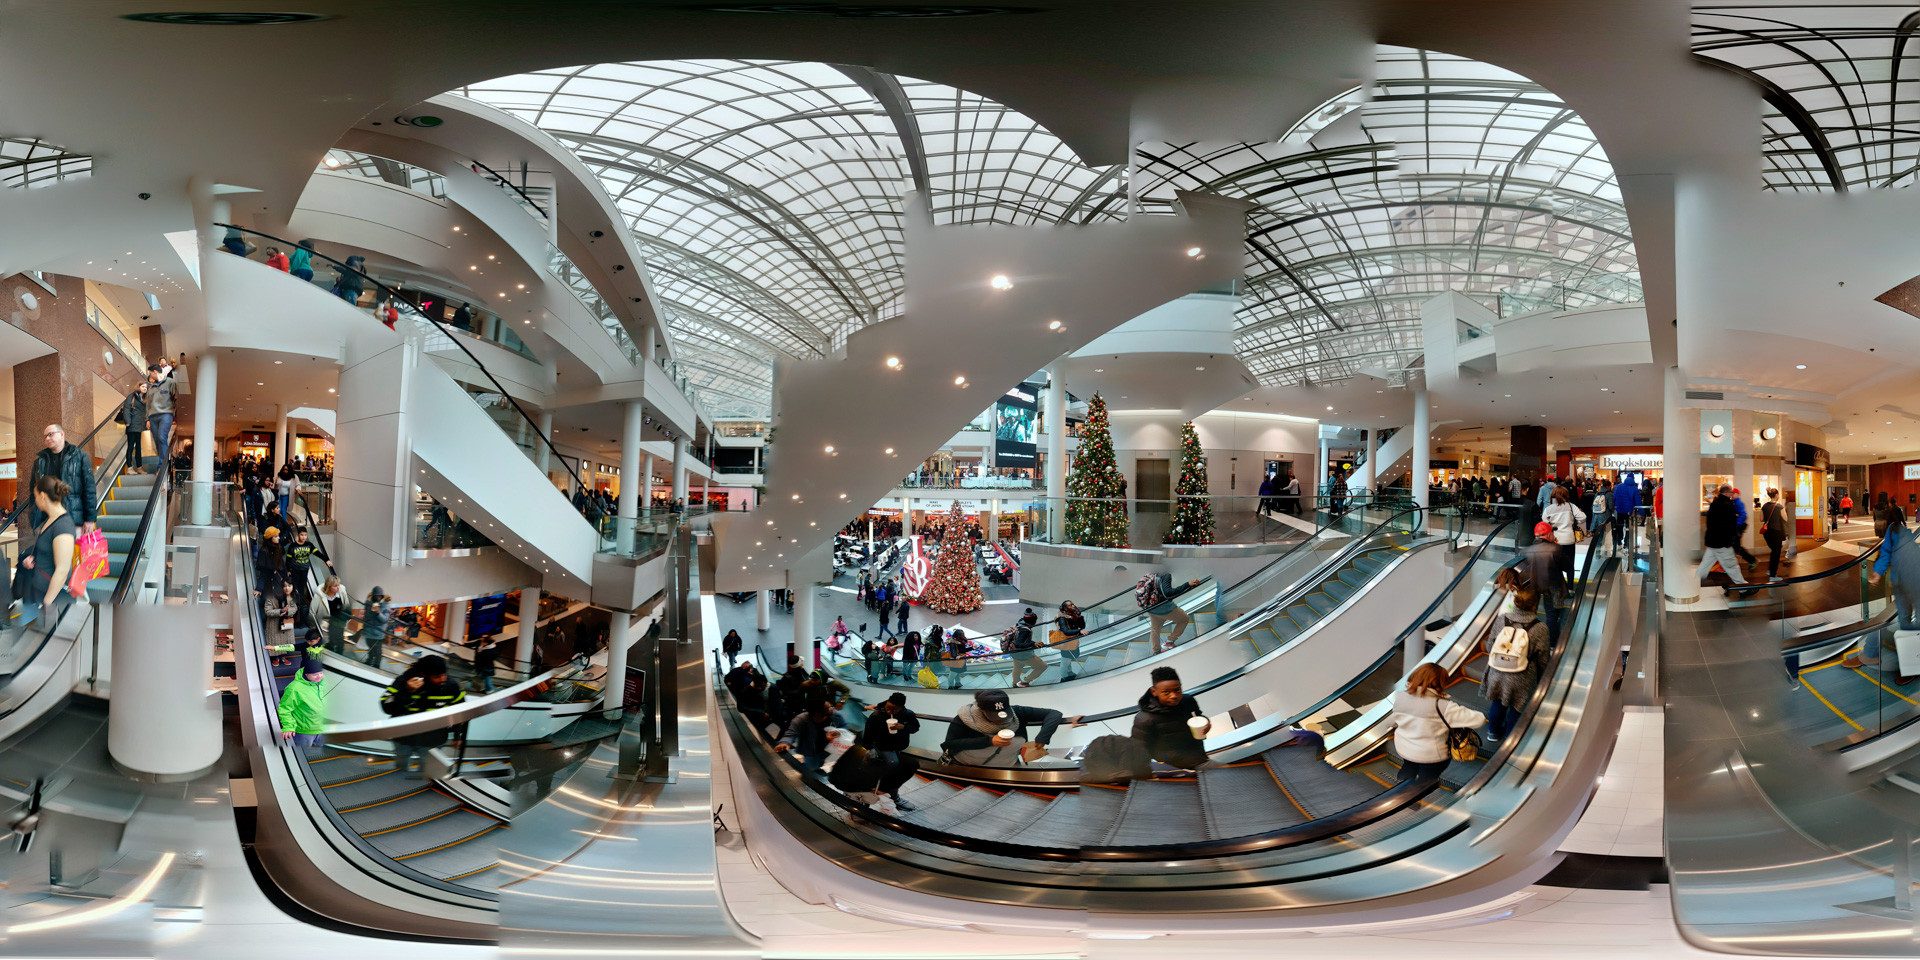 What's a Photo Sphere, Anyway? (click to find out)